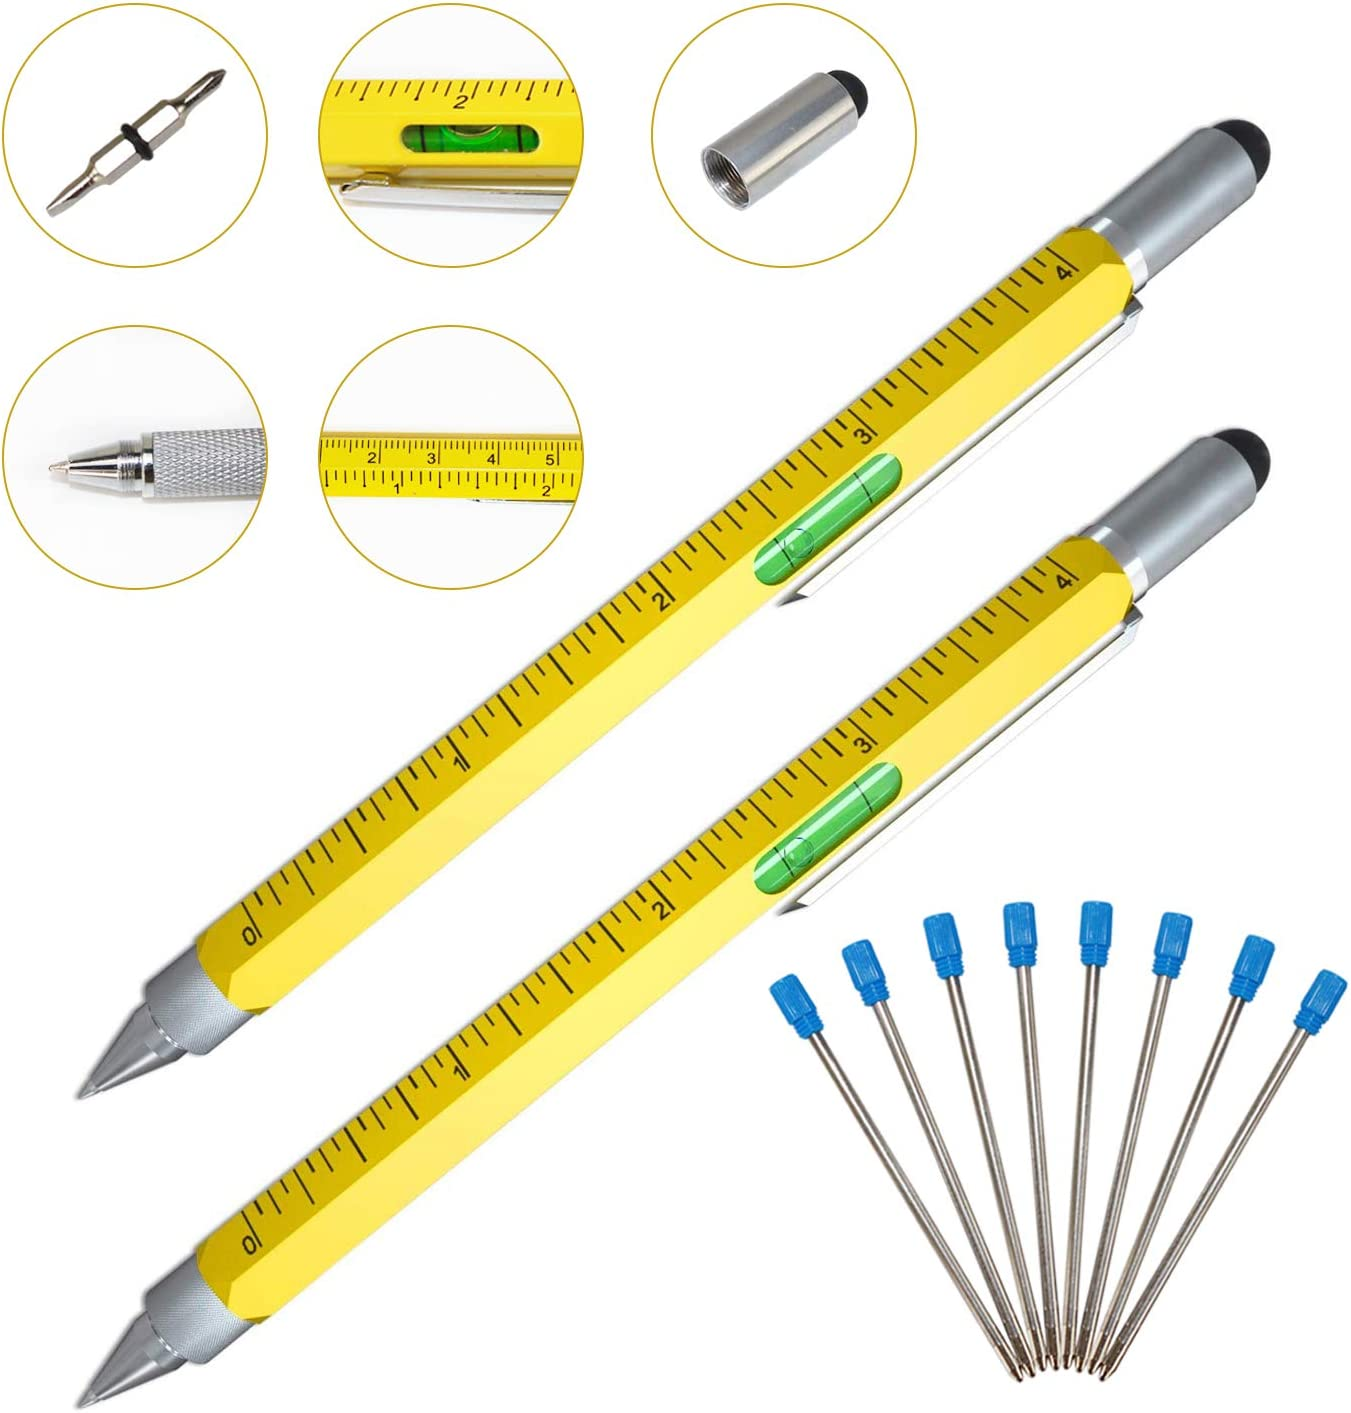 Xtreme 6 in 1 stylus pen level Stylus Flathead Pen screwdriver Ruler SALE